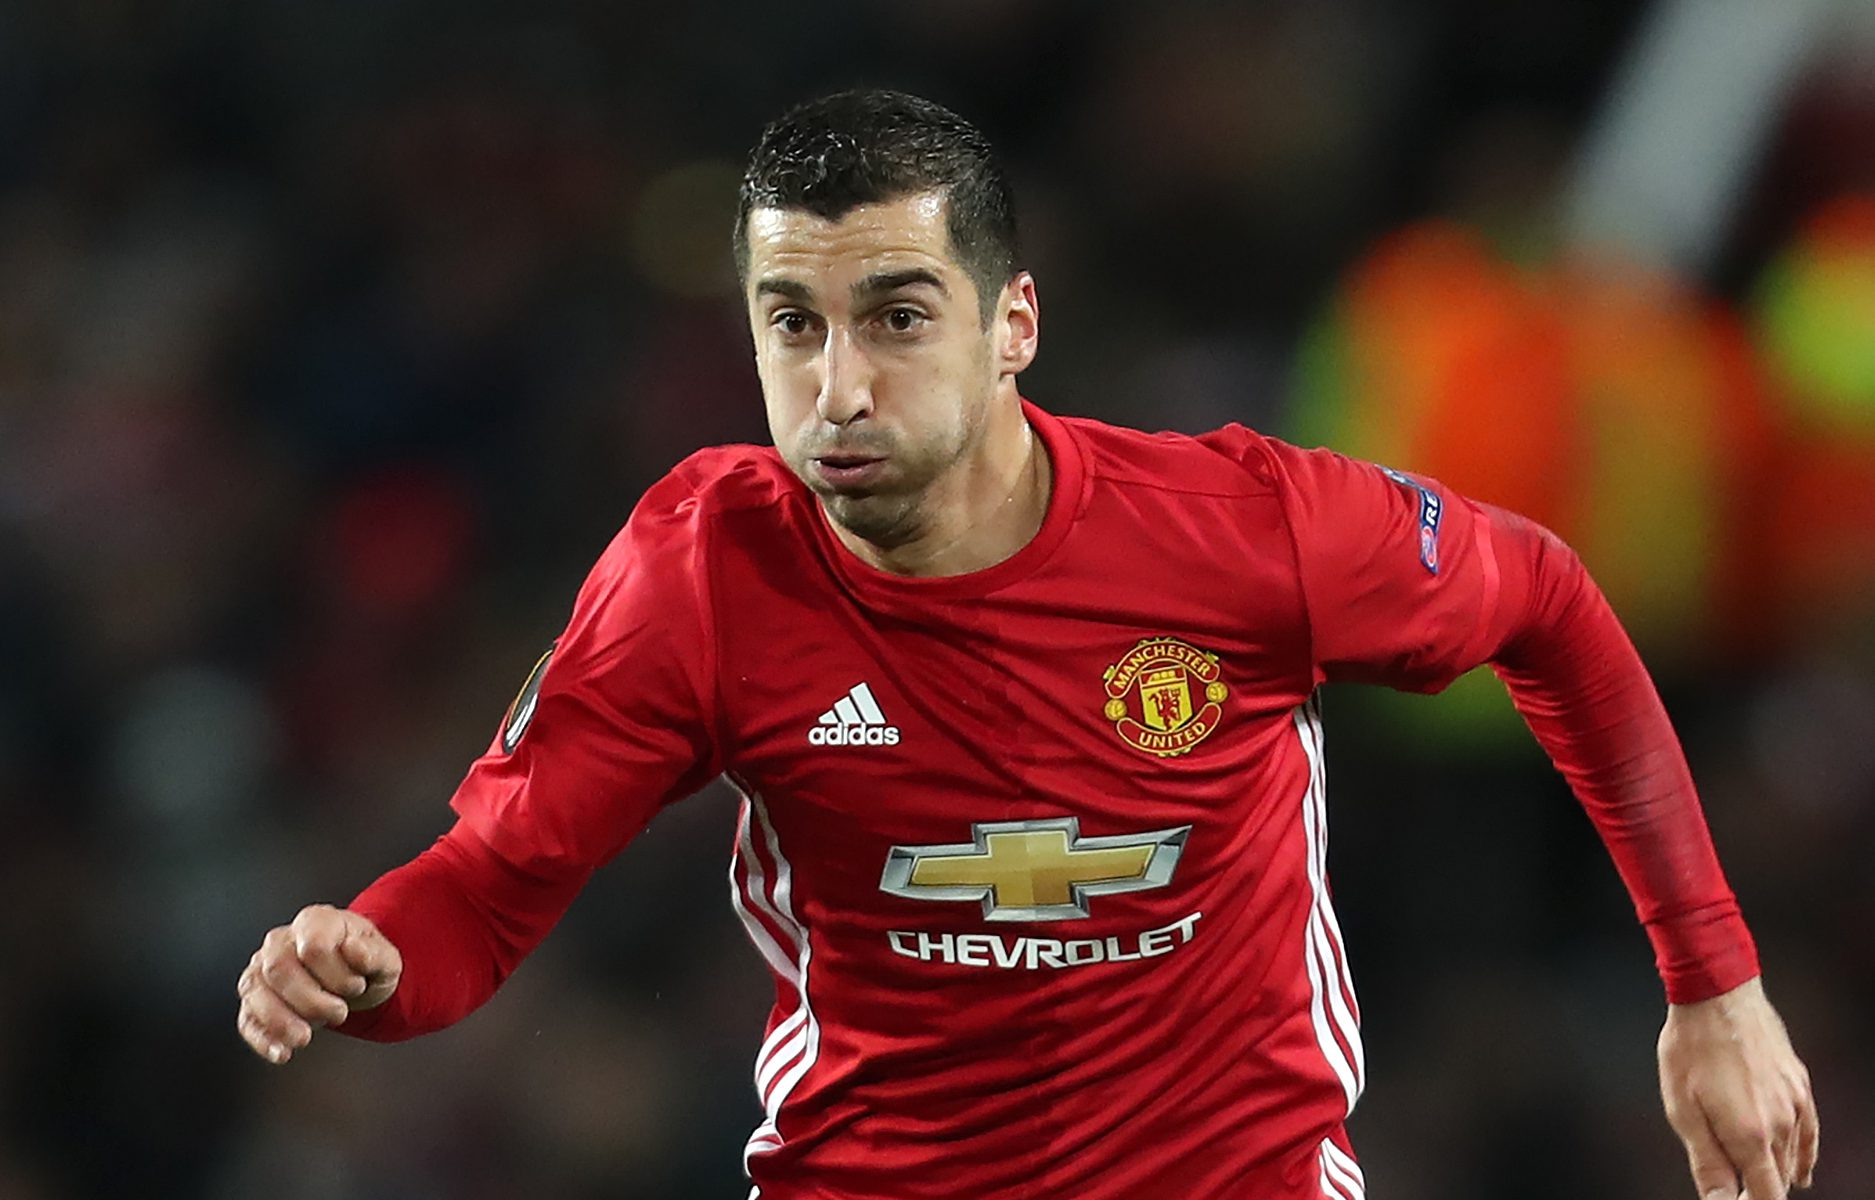 Henrikh Mkhitaryan like a new signing for Manchester United, says Robbie Savage